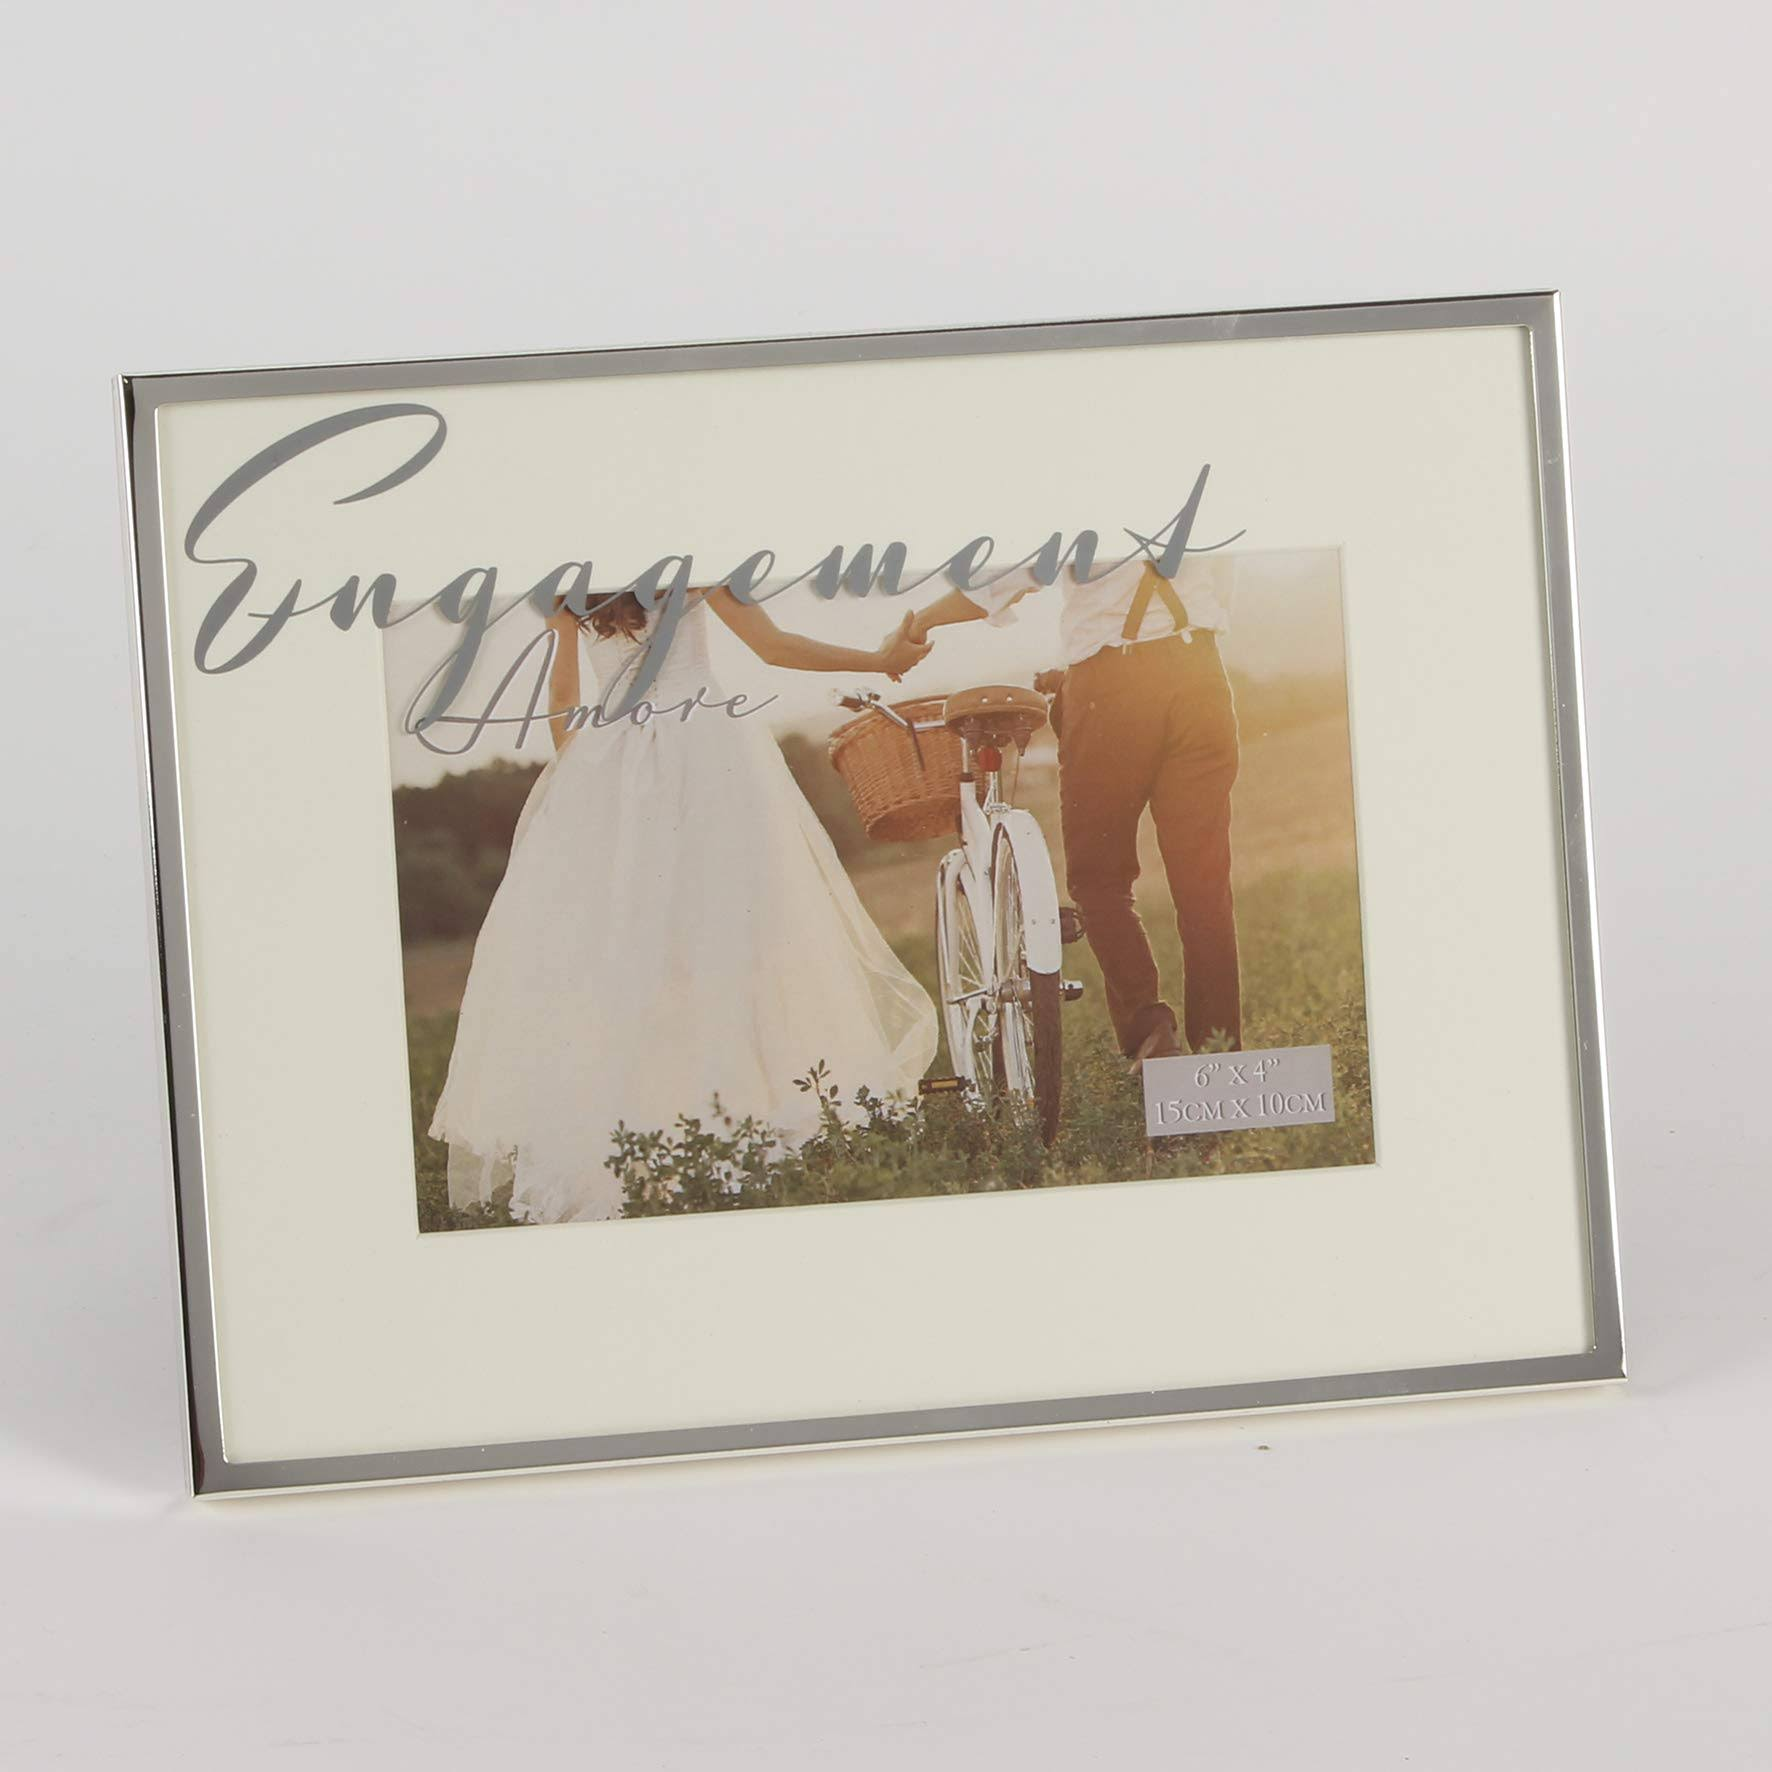 Amore Silver Plated Engagement Frame - 6 x 4 Inches